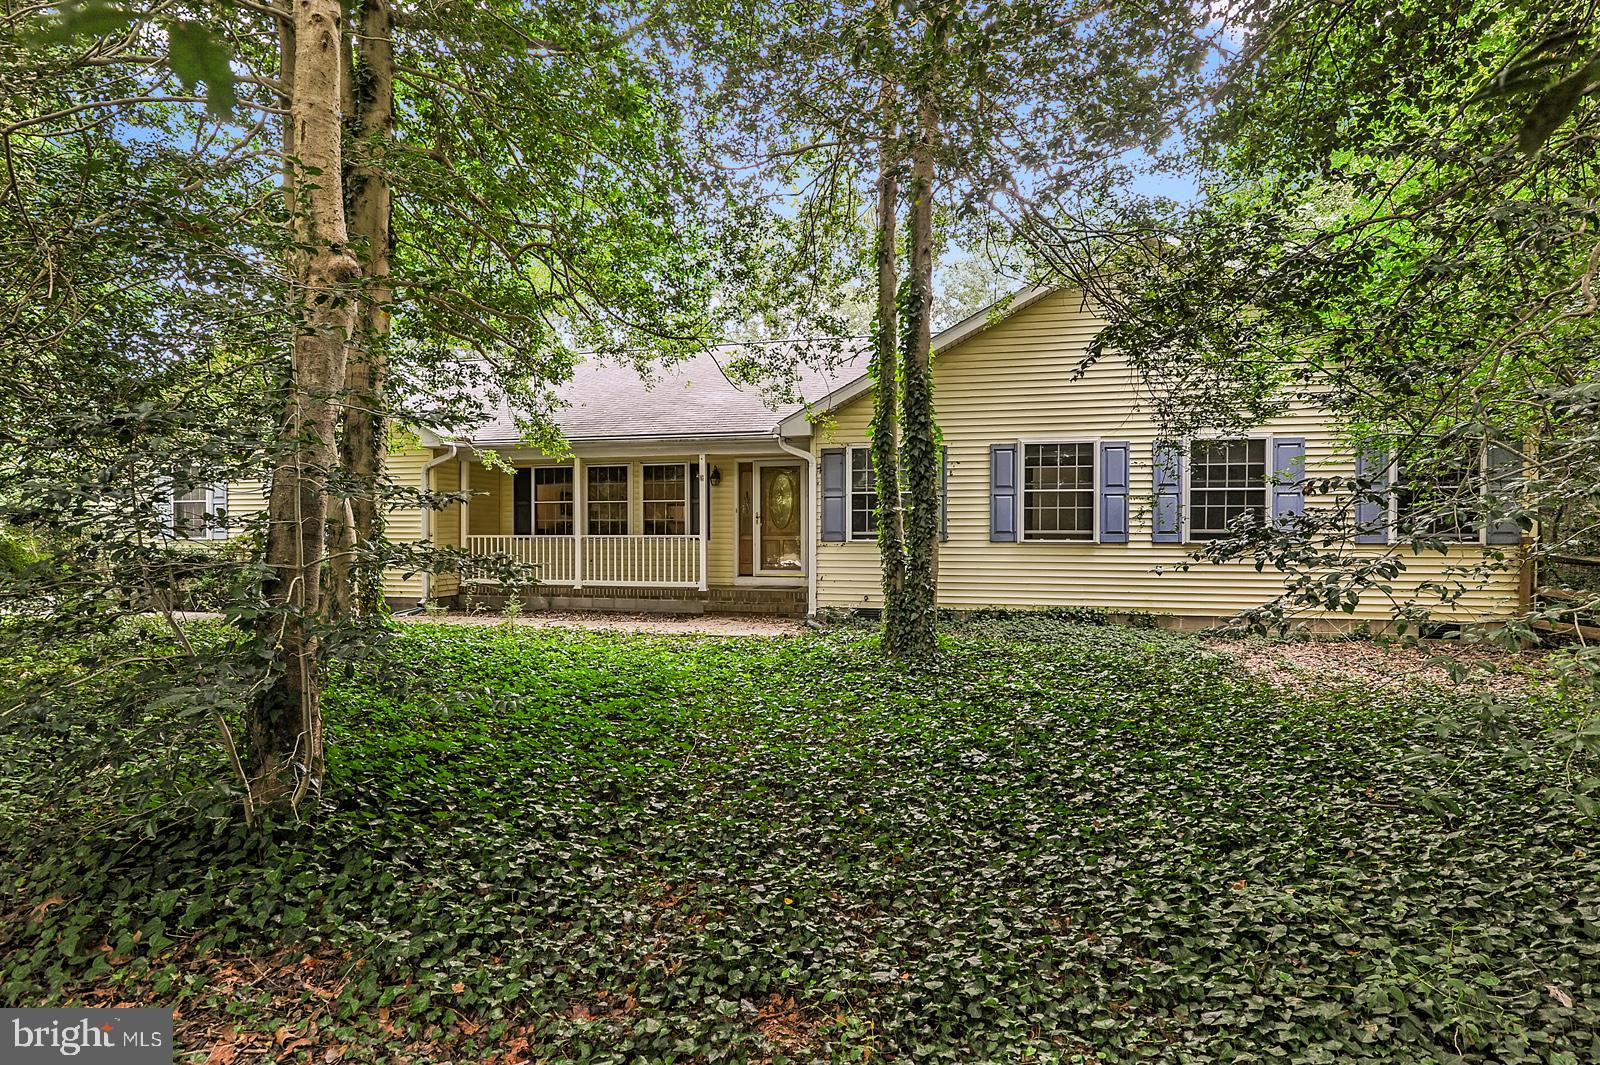 Beautifully secluded 3 bed/ 3 bath ranch home in established and desirable South Shores community! Nestled in a wooded cul-de-sac, this is where you want to rest and relax... Large, wraparound deck with awning in the fenced-in rear yard for added privacy. Inside, you'll enjoy the surprising space offered throughout the home - with 3 large bedrooms, including a primary bedroom with HIS AND HER BATHS and walk-in closet!! Leased solar panels with two bonus solar lights (one in the kitchen and one in the first bath in the primary bedroom) and geothermal heating make this an environmentally friendly and cost efficient home! New floors in living room, large primary bedroom with en suite and spacious kitchen are just a few of the things you'll love about this house!